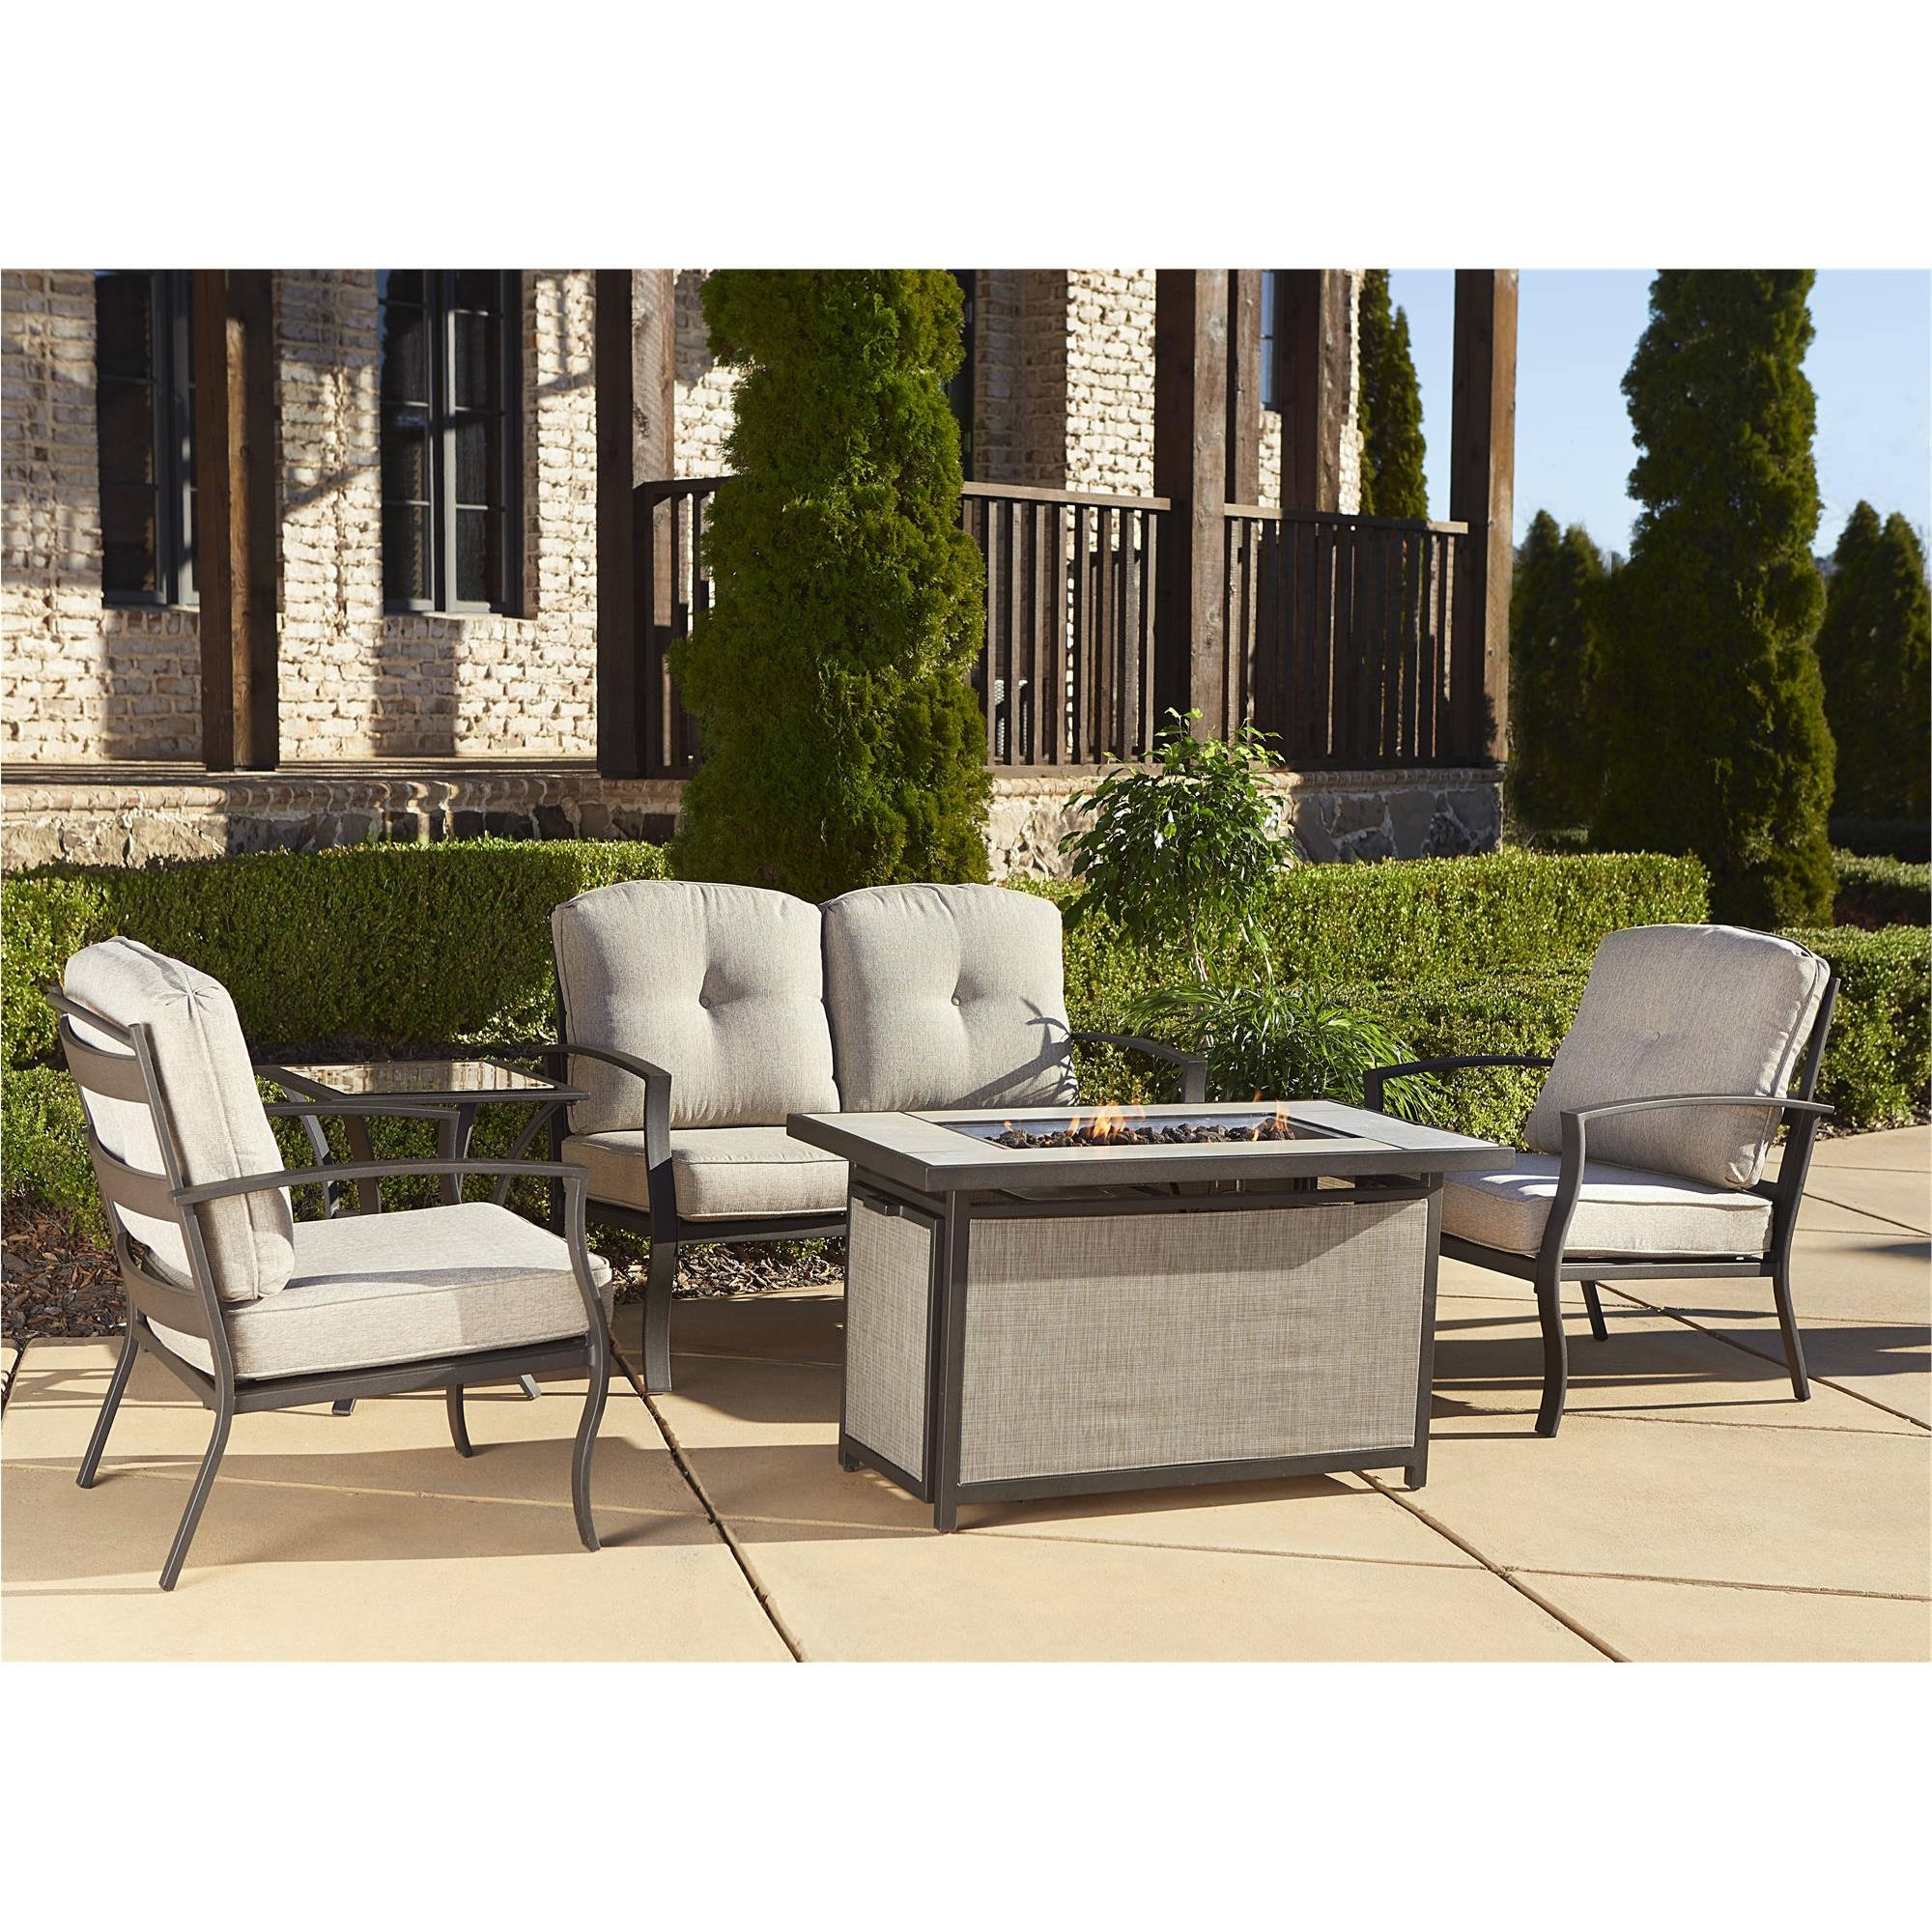 Dot Patio Conversation Sets Within Well Known Cosco Outdoor 5 Piece Serene Ridge Aluminum Patio Furniture (View 9 of 15)